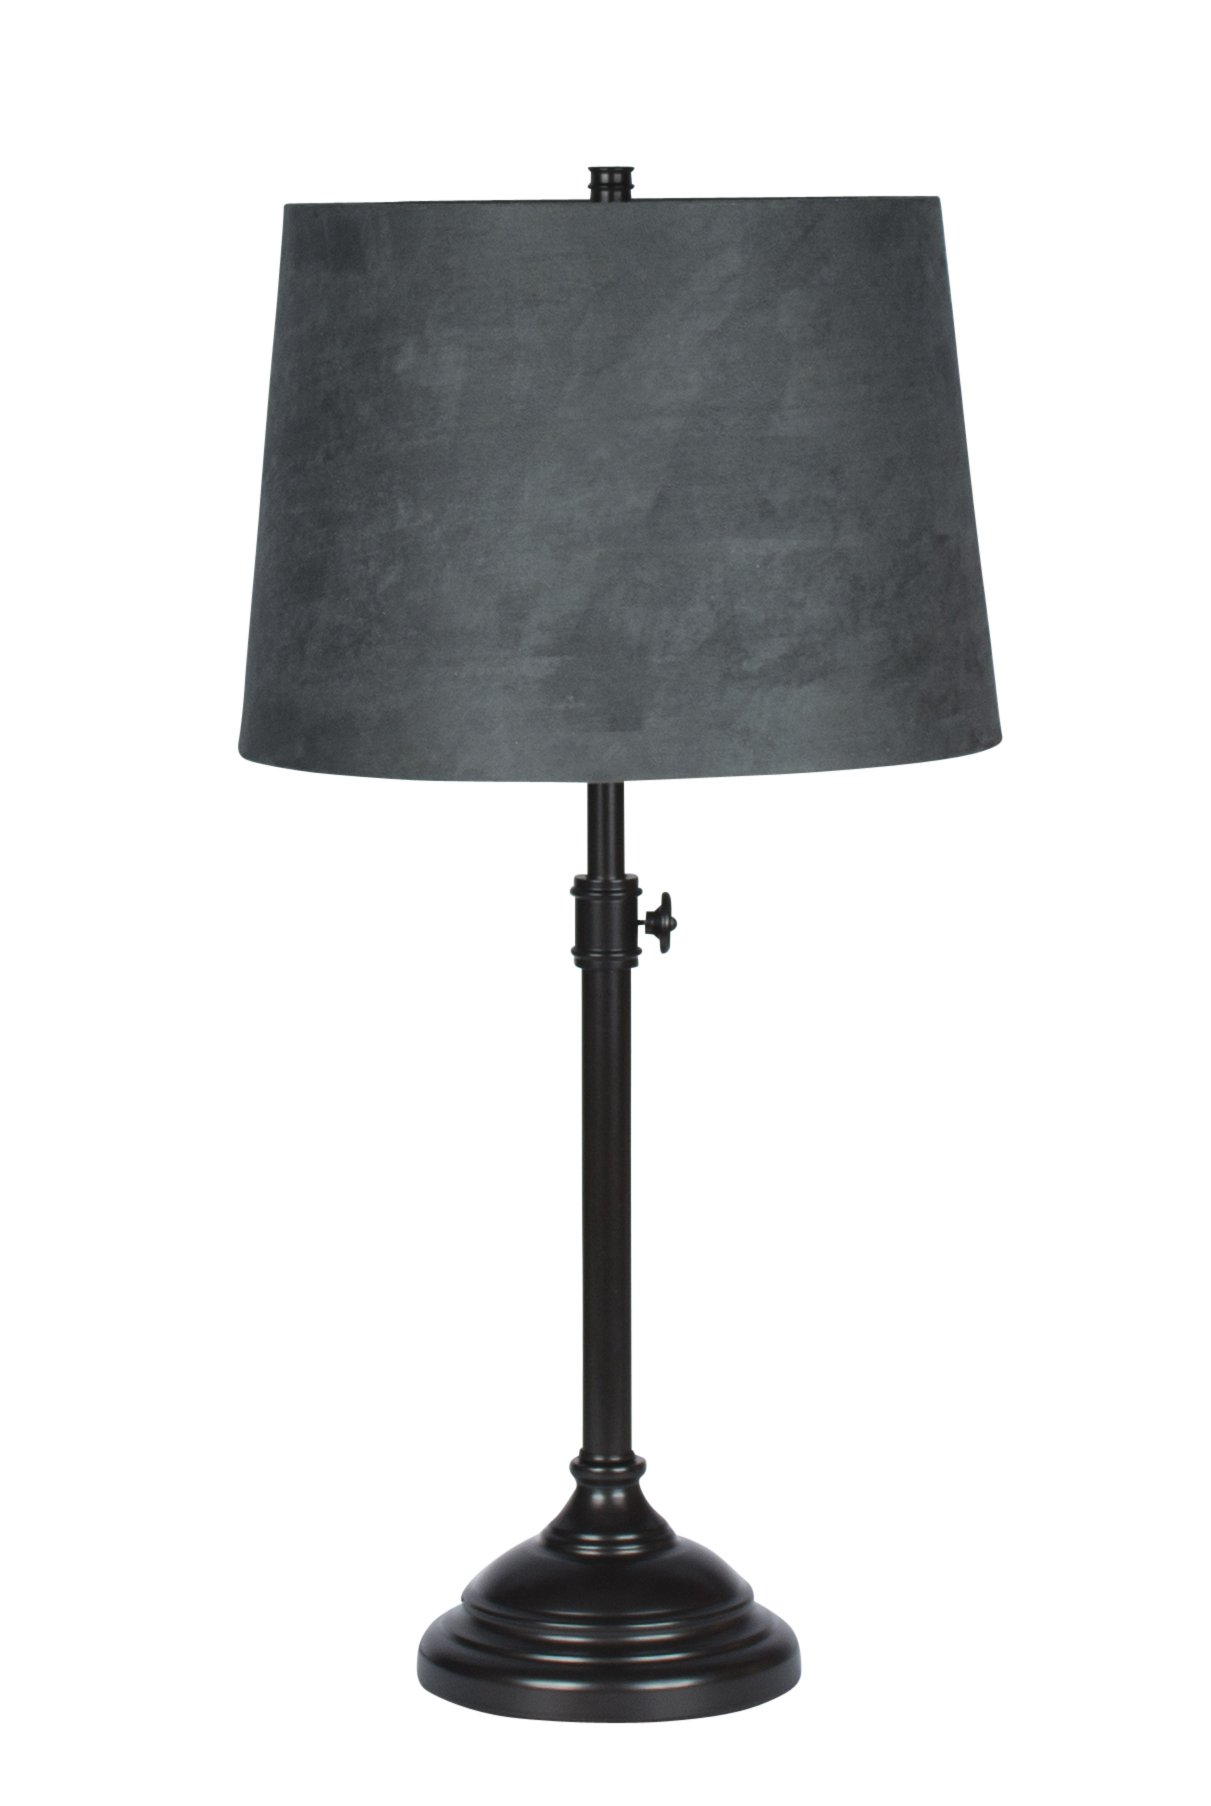 Urbanest Windsor Adjustable Table Lamp, Oil-Rubbed Bronze Finish Lamp Base with Gray Suede Lampshade